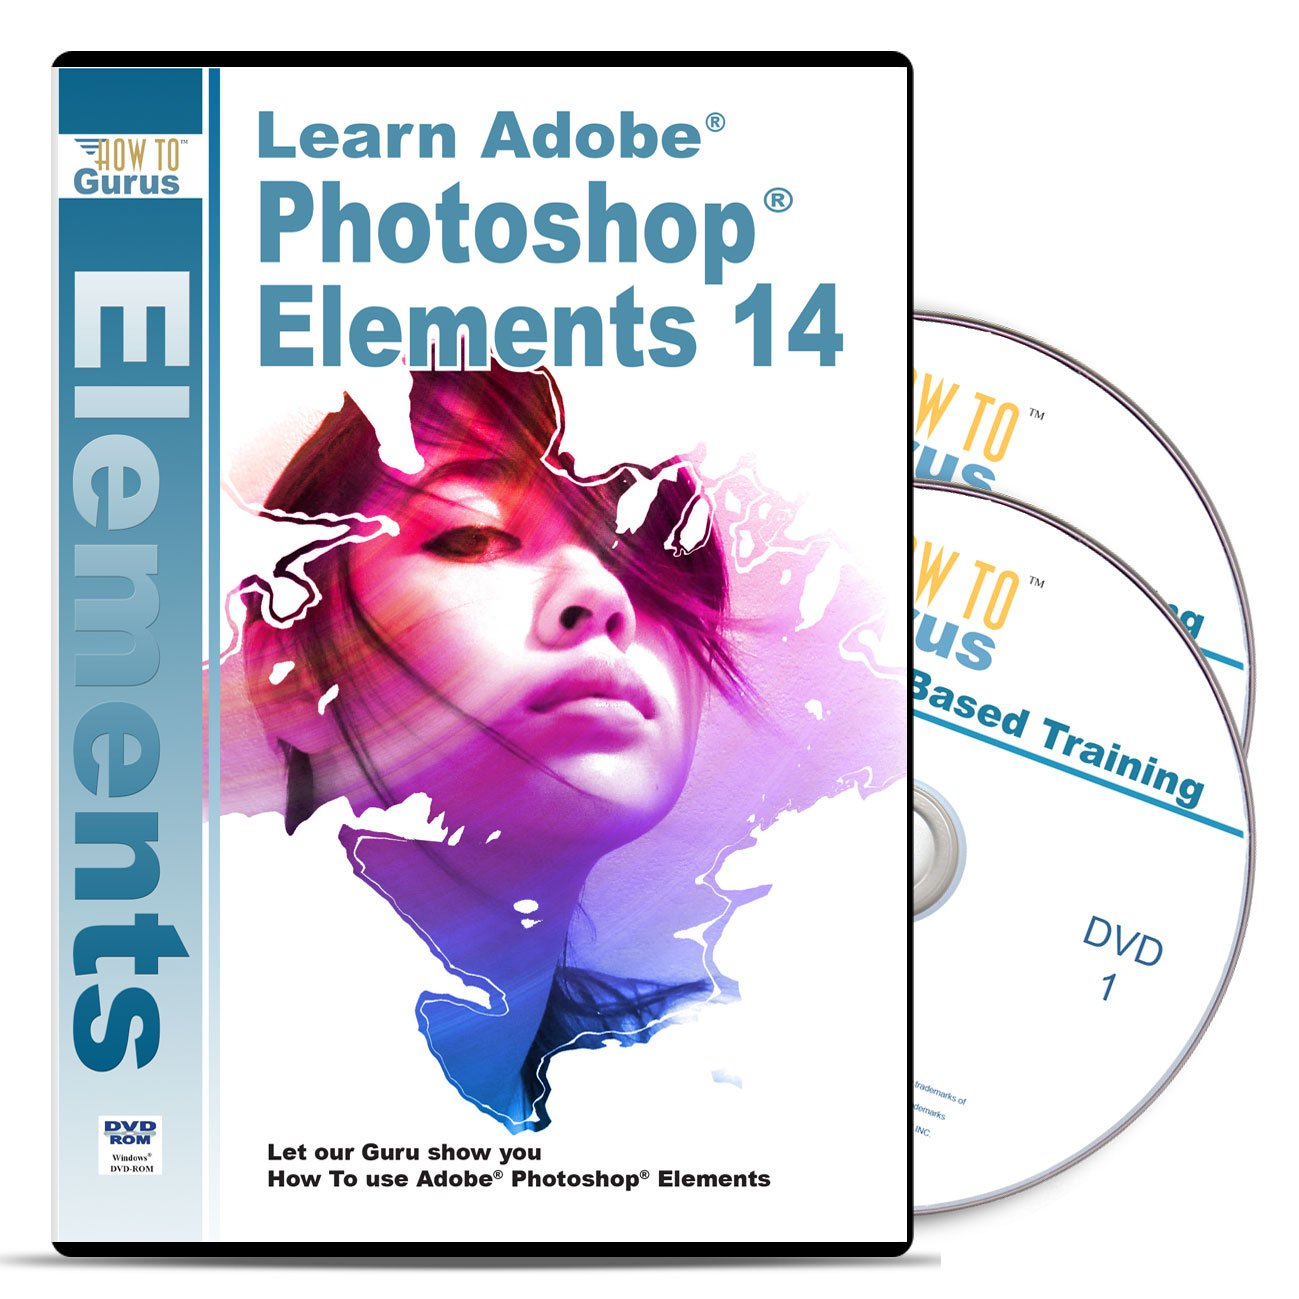 Amazon photoshop elements 14 tutorial software over 15 hours amazon photoshop elements 14 tutorial software over 15 hours 233 videos on 2 dvds complete training for adobe photoshop elements office products baditri Images